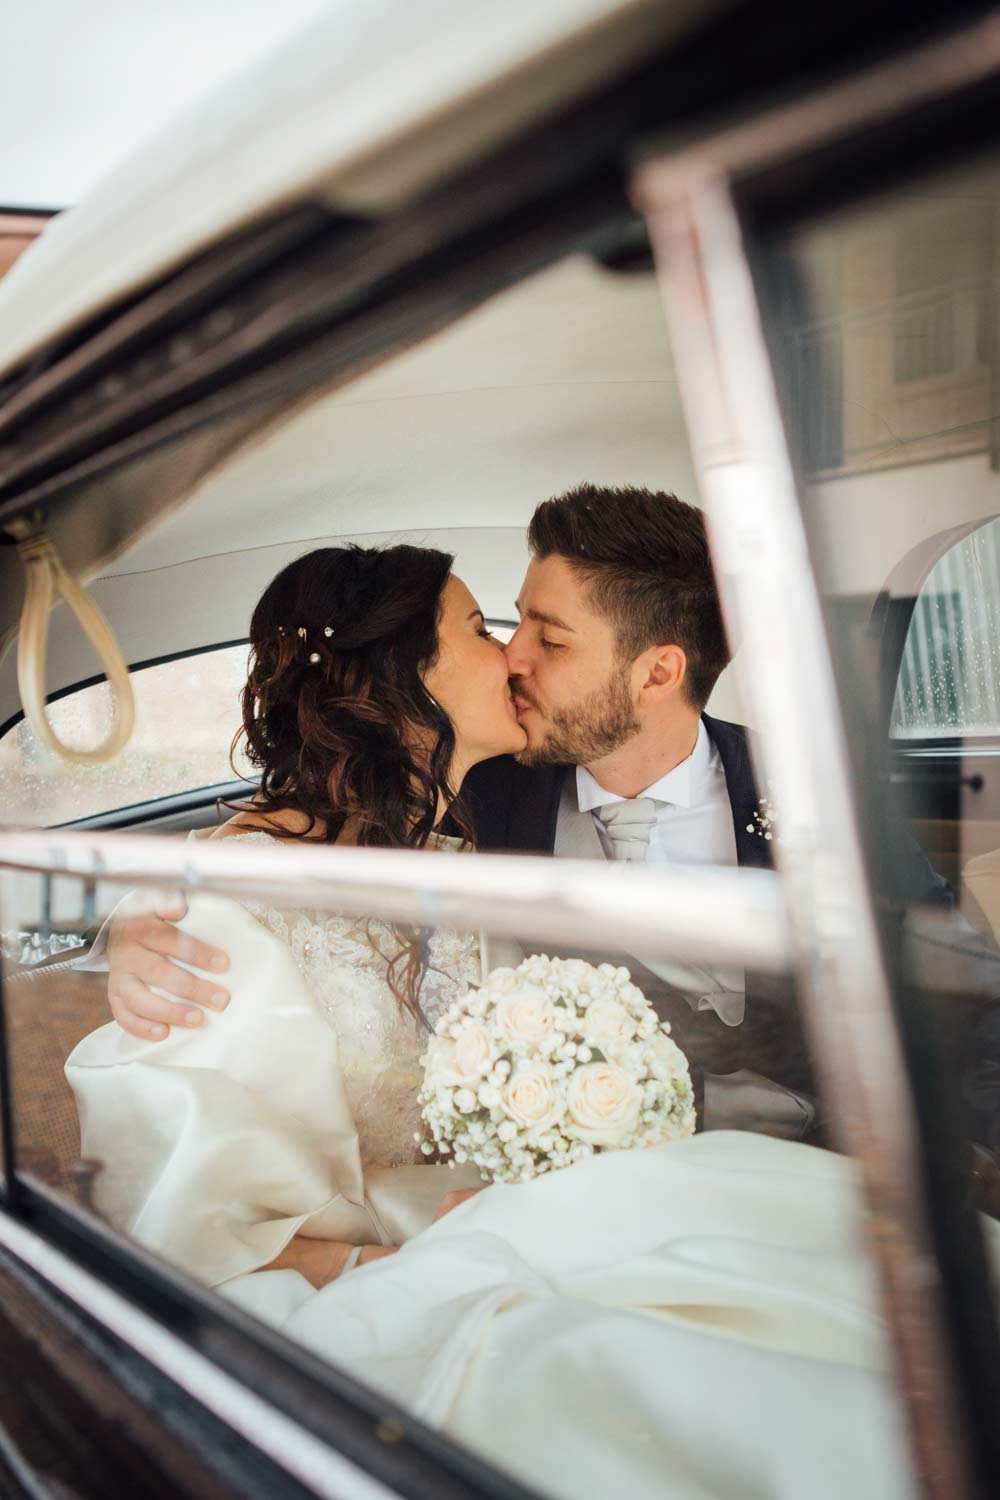 Into the wedding car